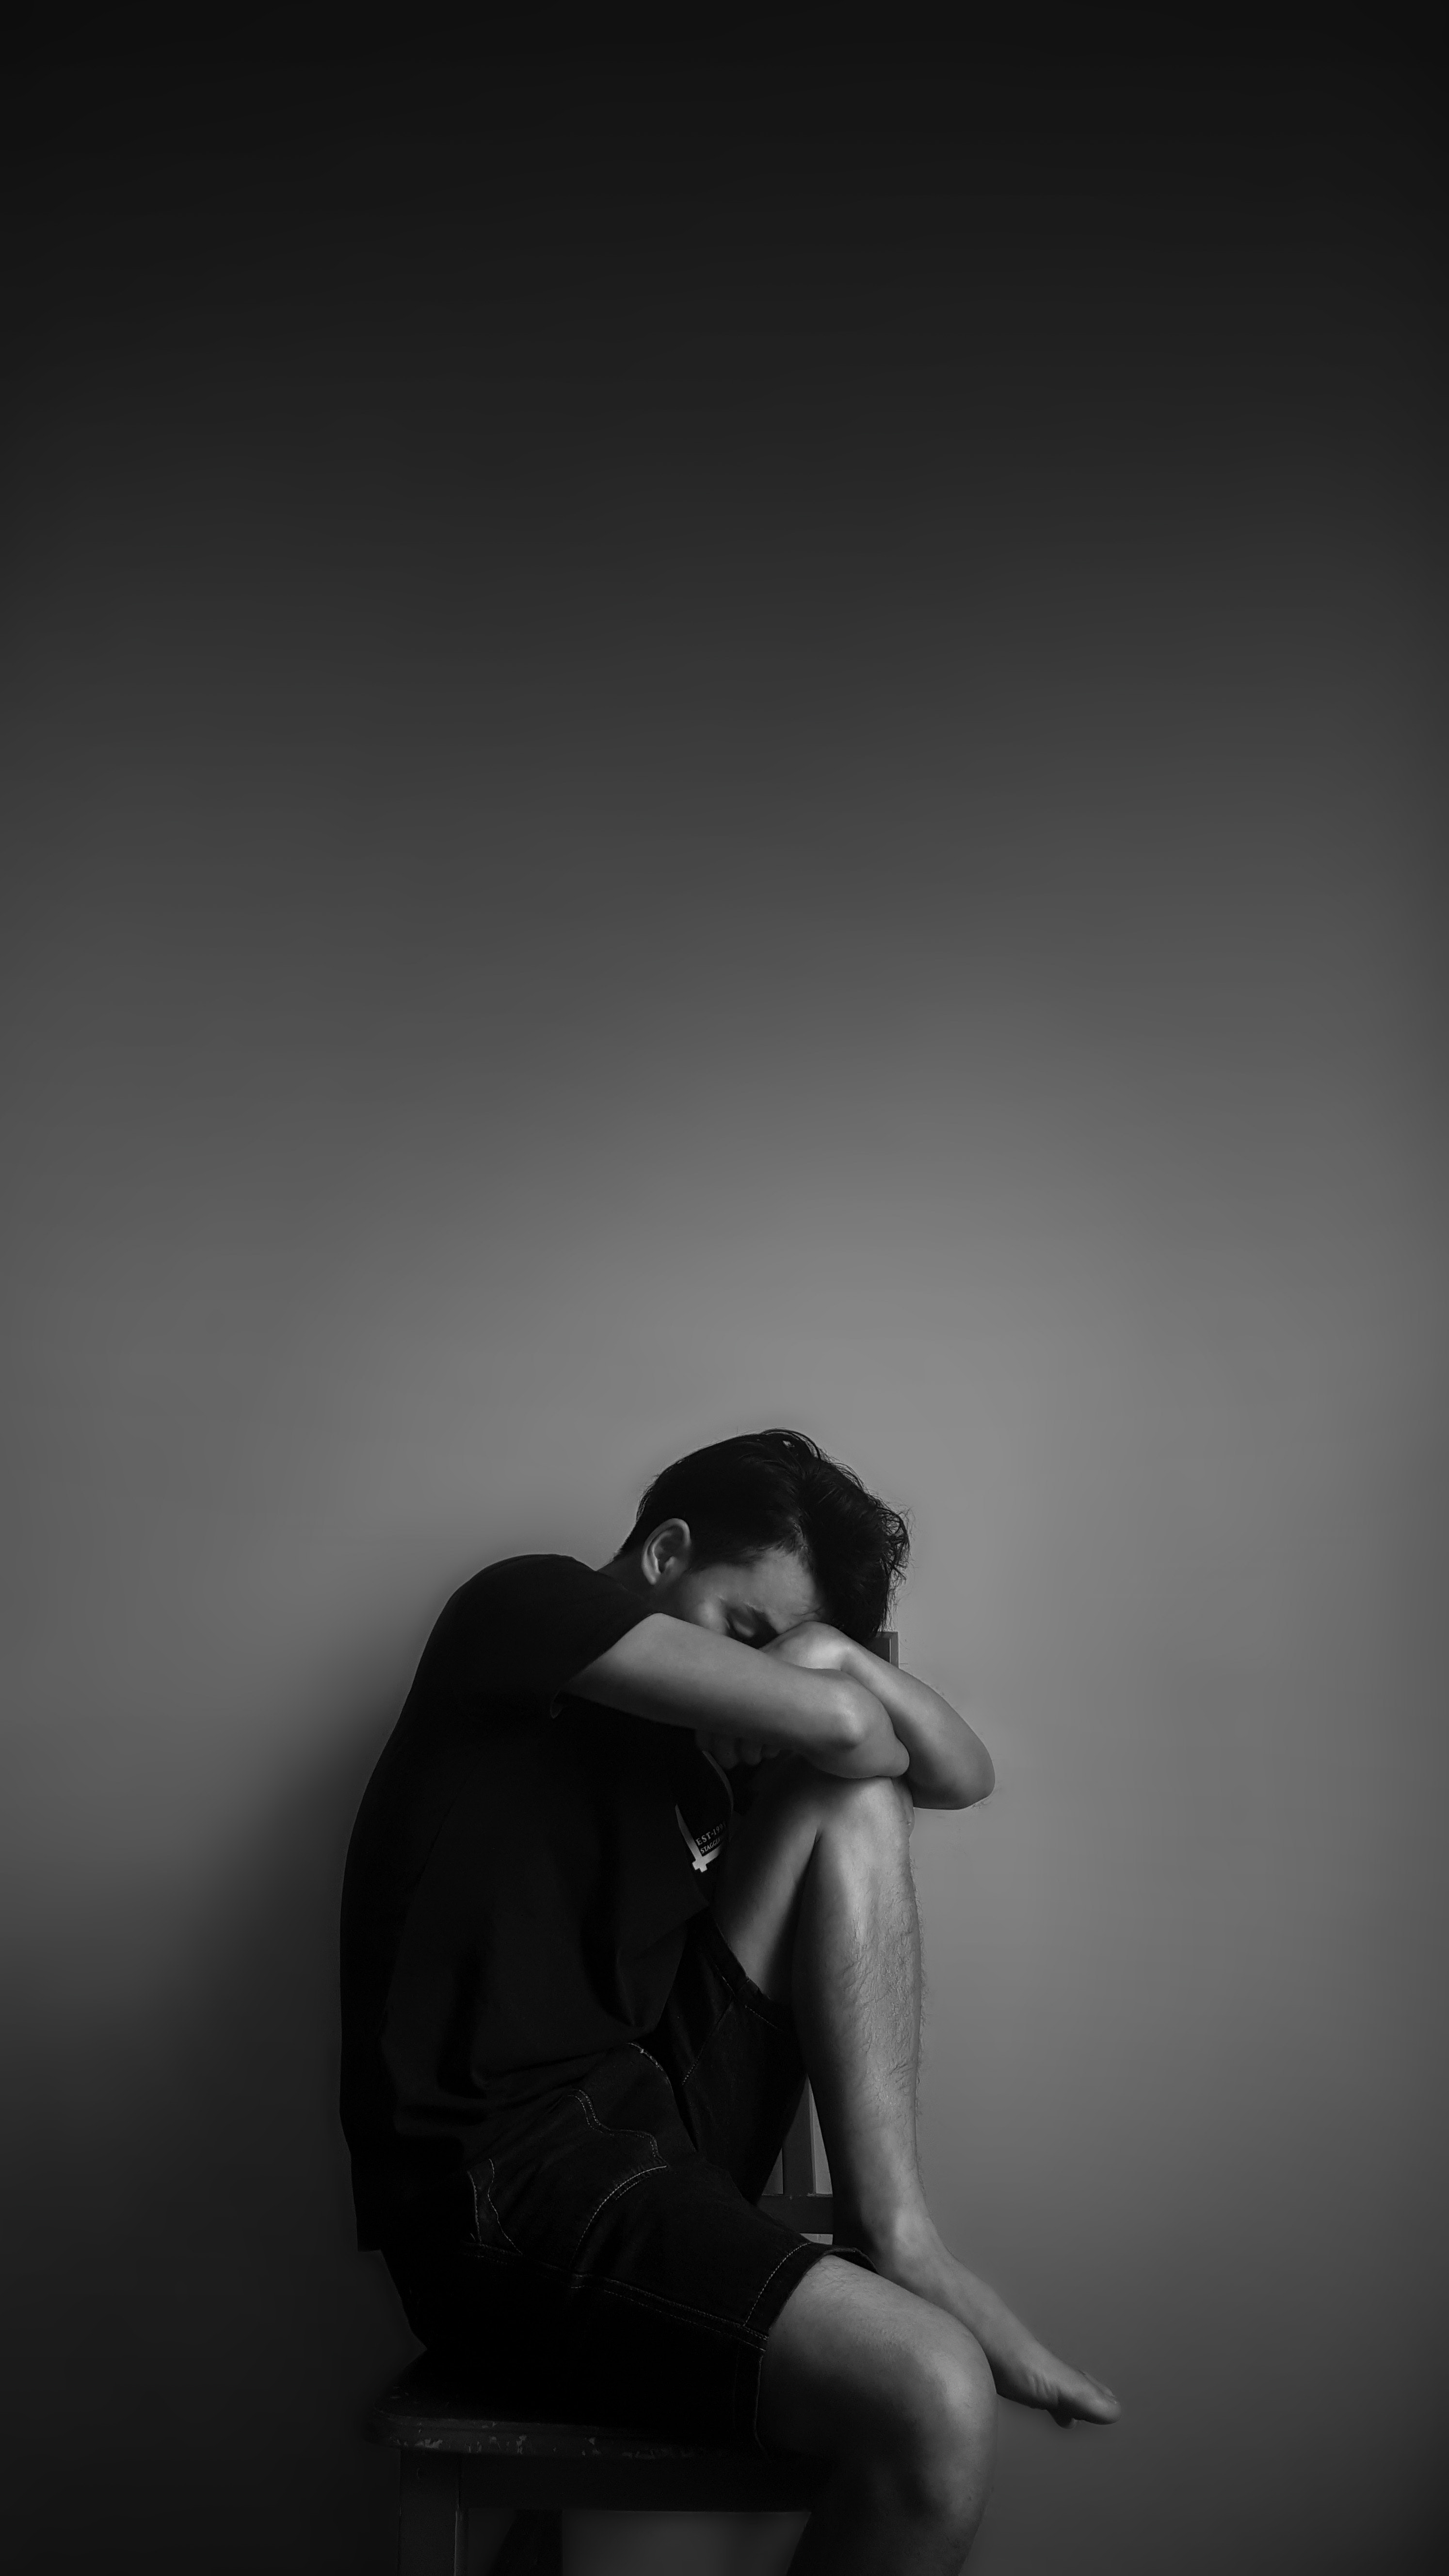 Grayscale Photography of Man Sitting Beside Wall, Adult, Man, Side view, Sad, HQ Photo